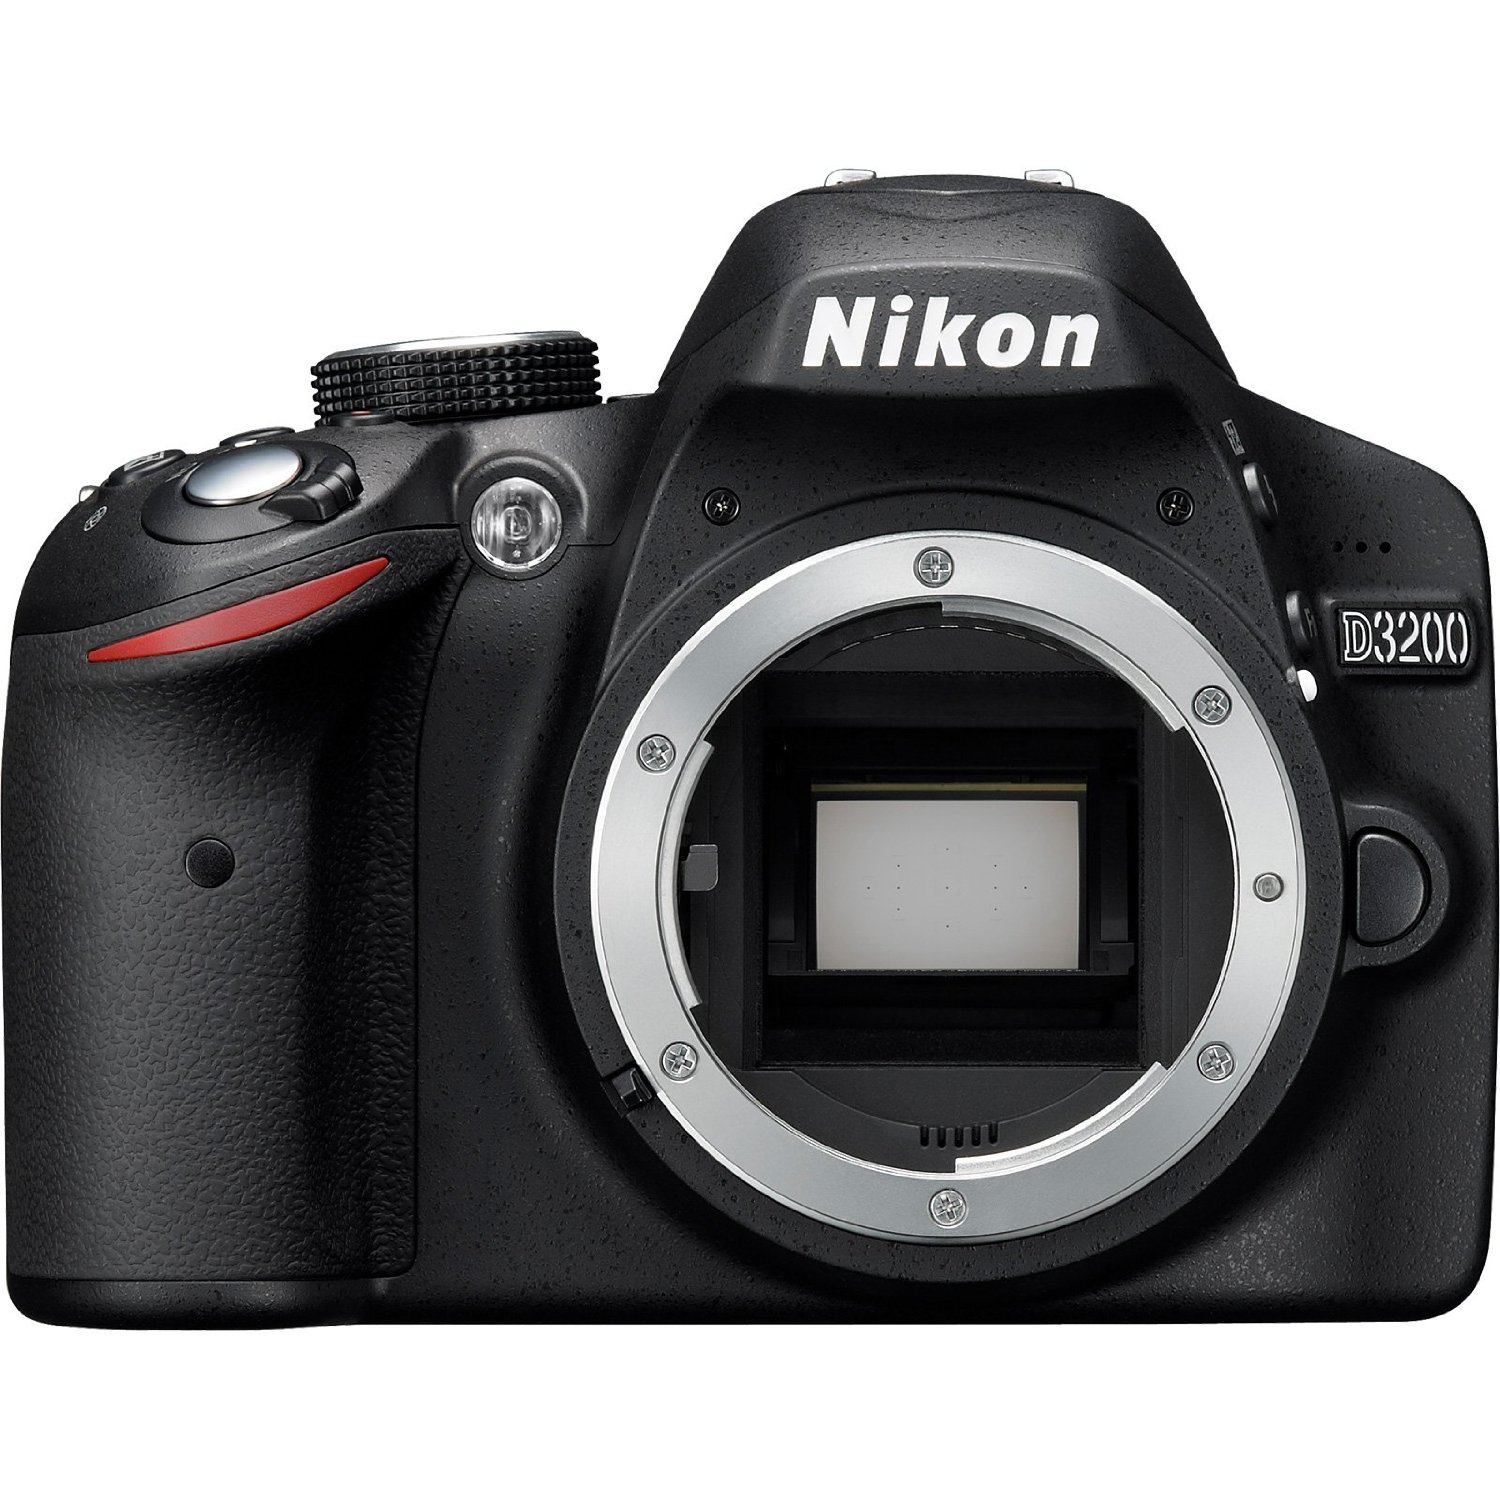 best dslr cameras under 20000 rupees